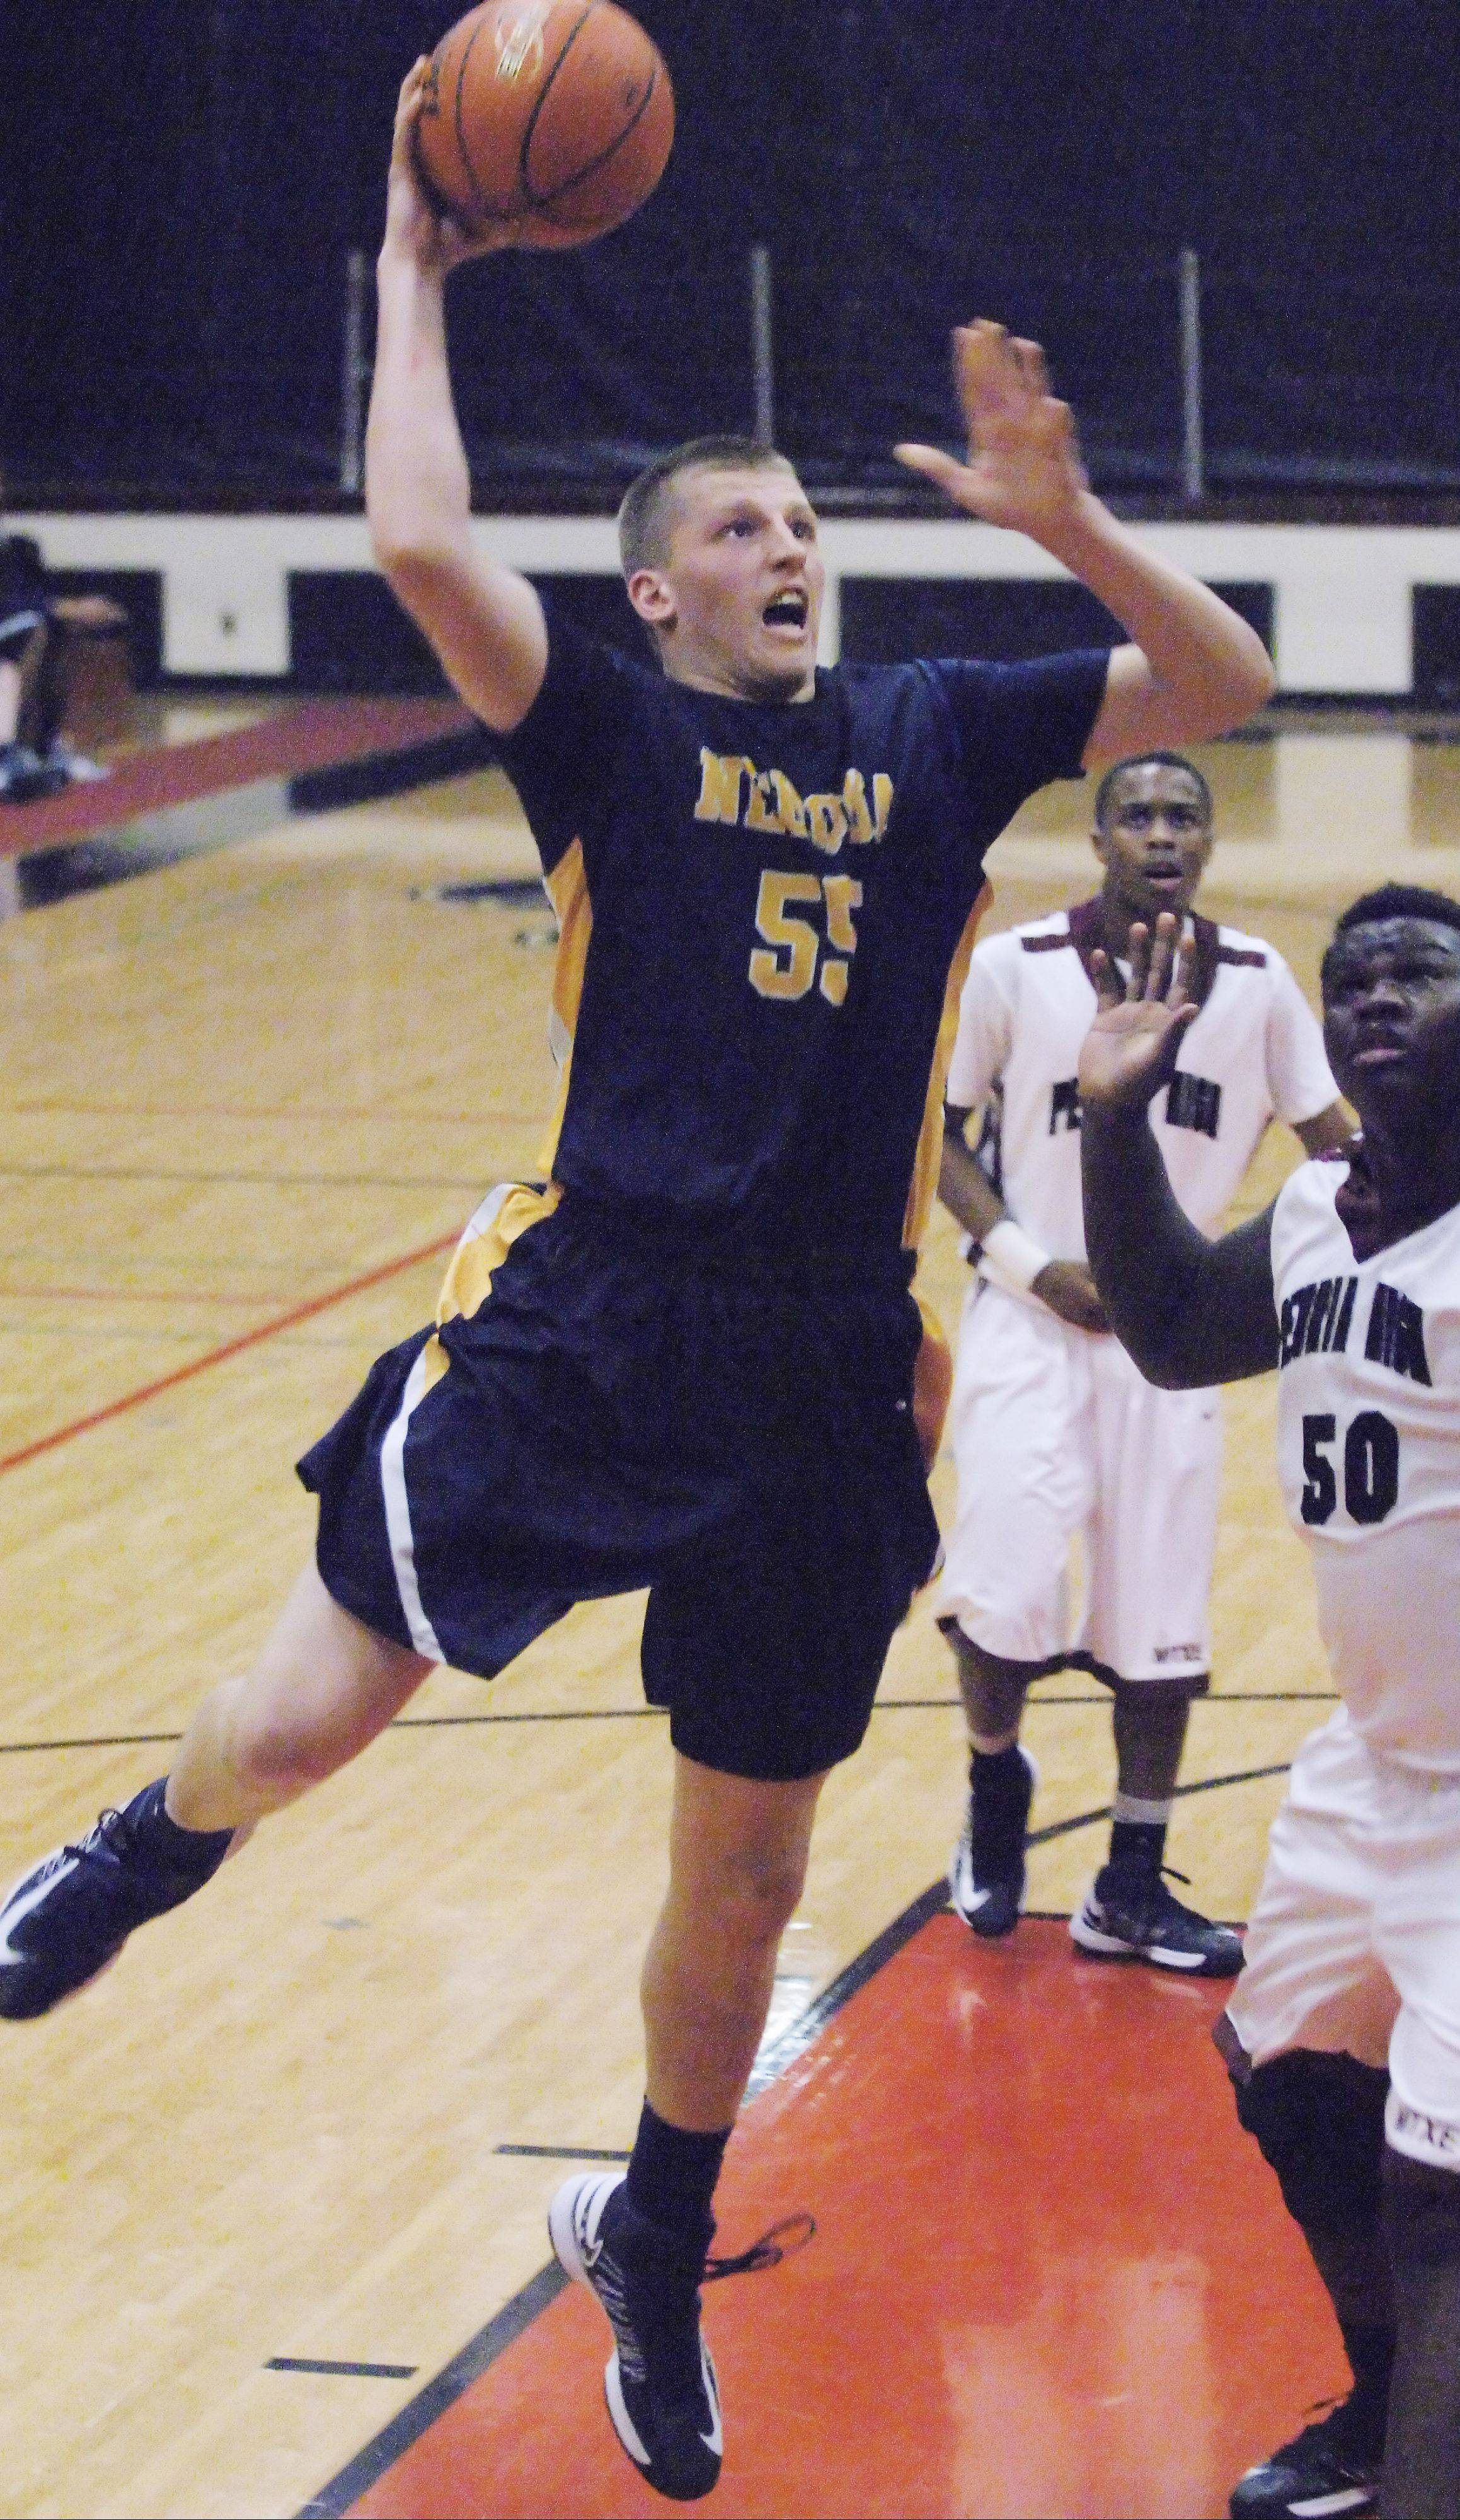 Neuqua Valley's Pat Kenny takes the ball to the hoop against Peoria Central on Friday at East Aurora.